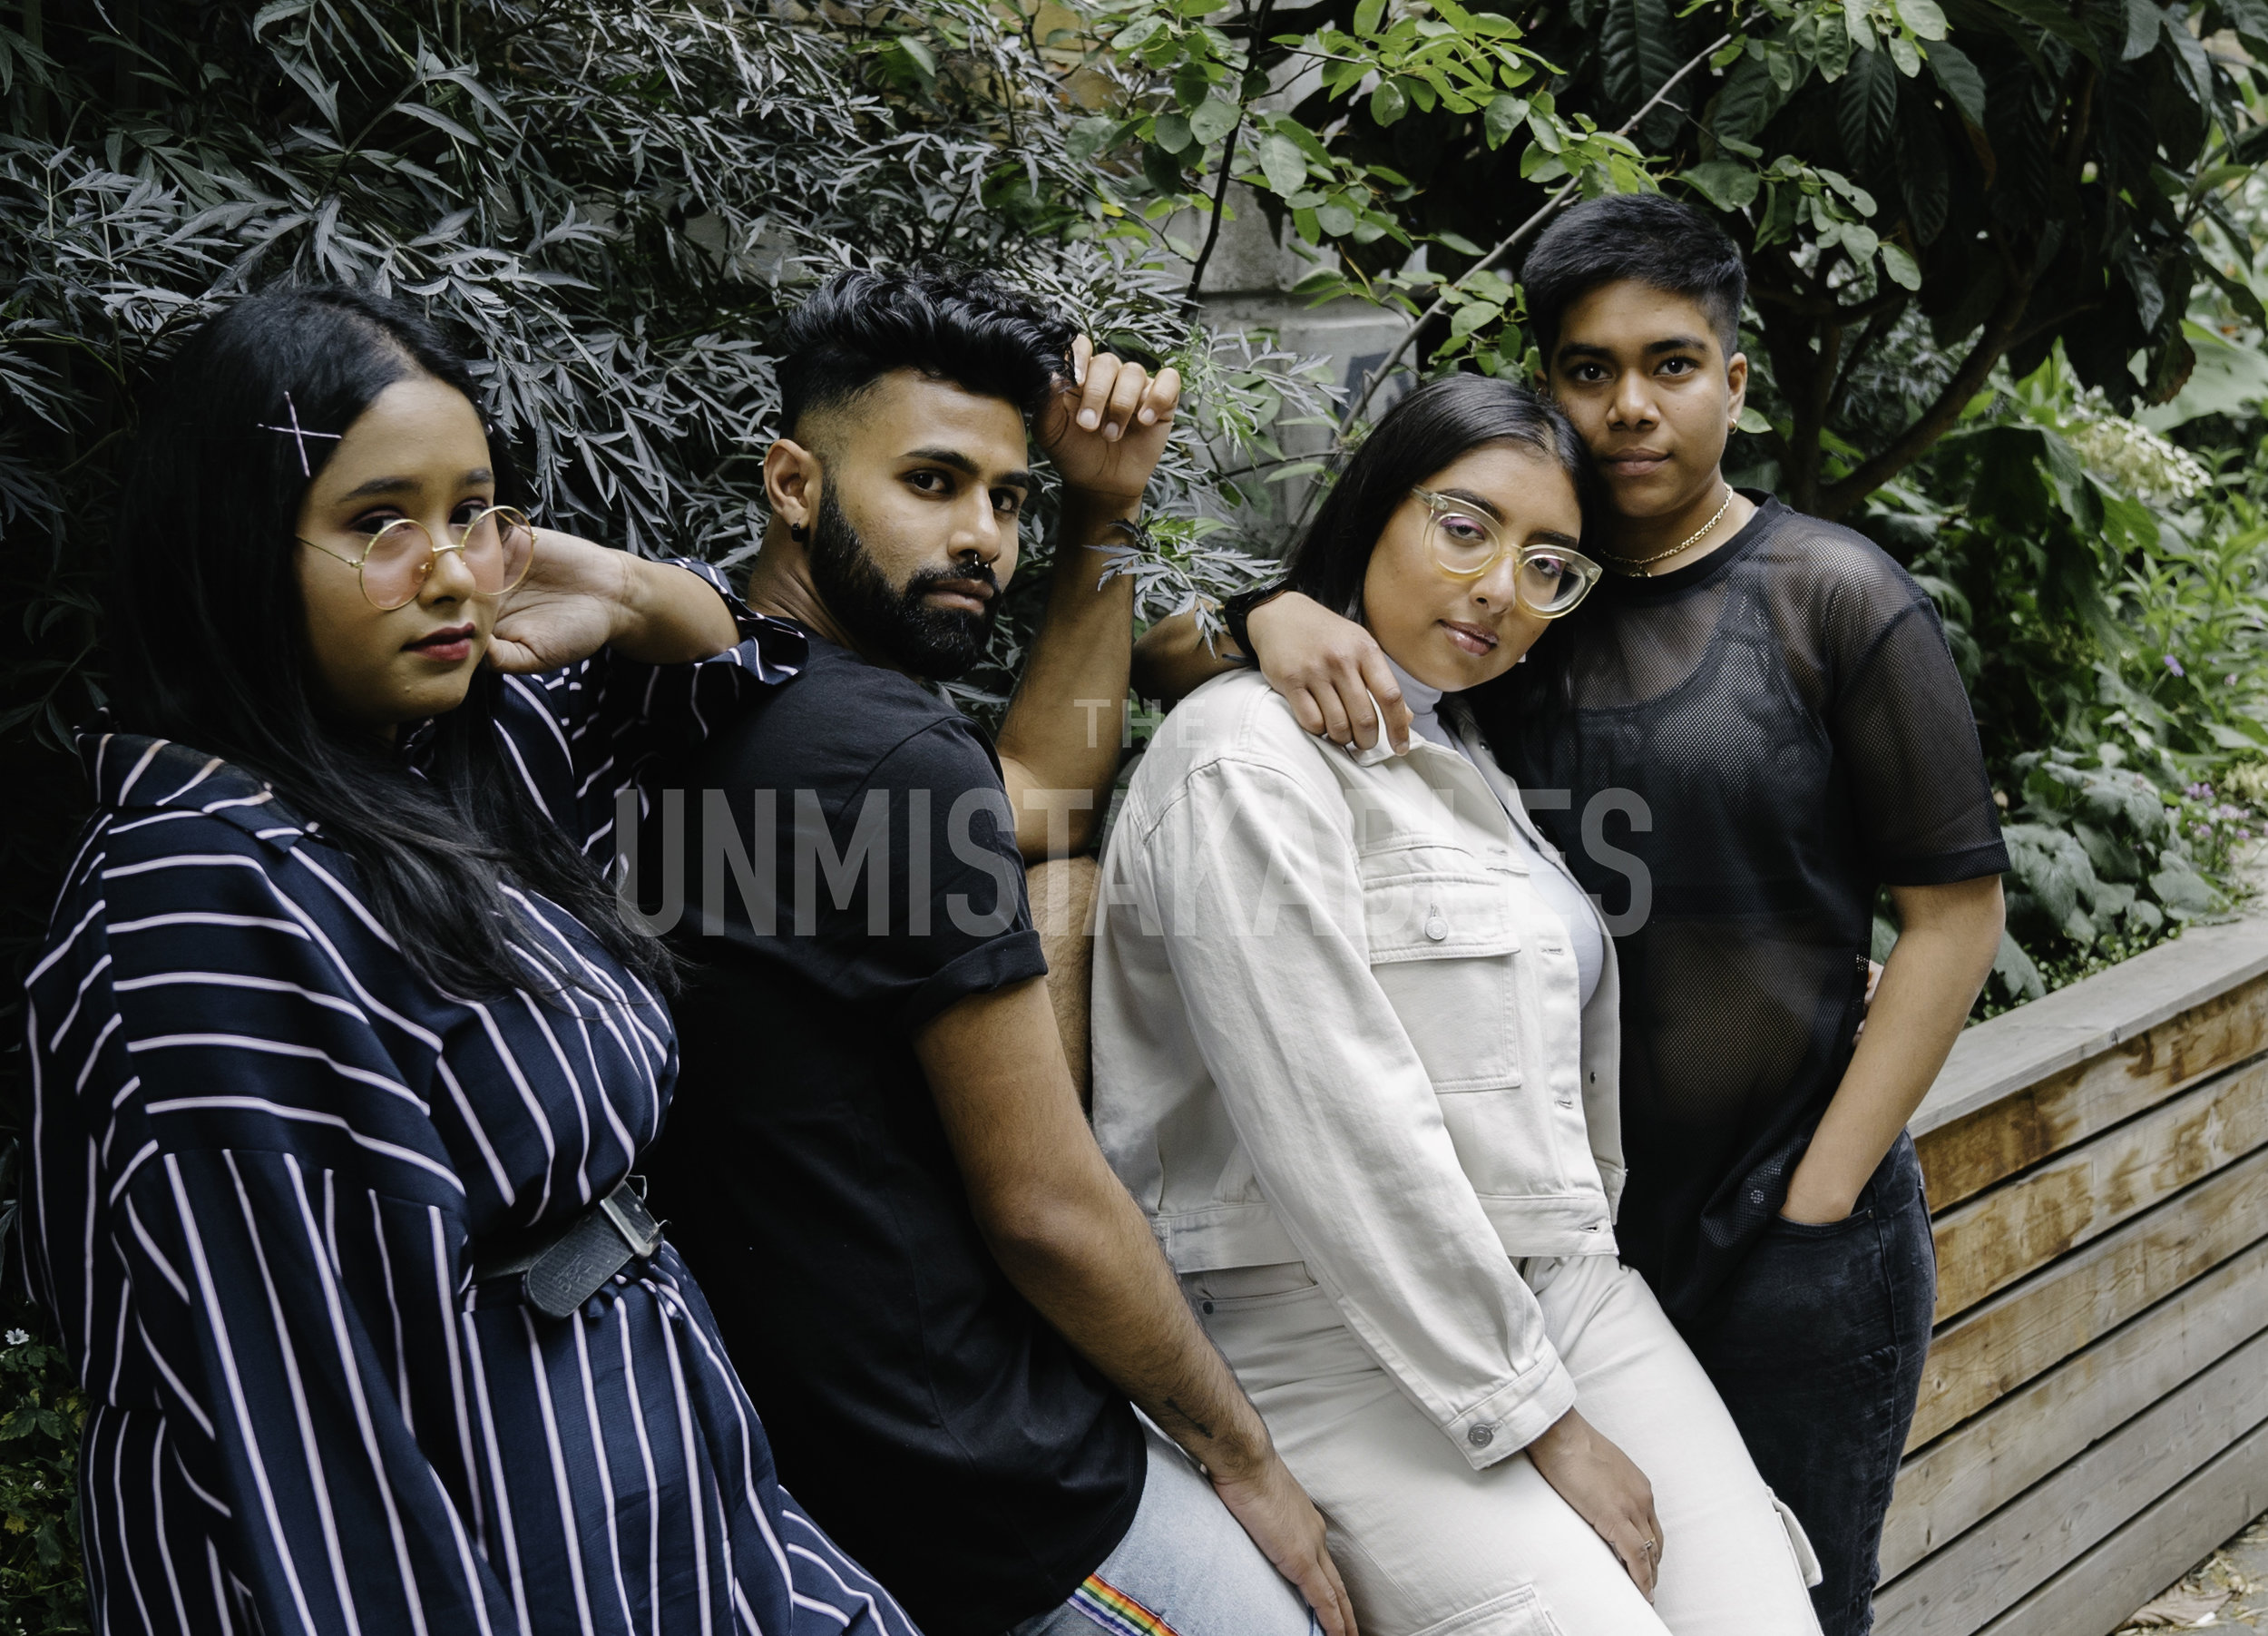 Riah Uddin - her/she // @imafauxpasRiah (left) is a 21 year old creative from London of Bangladeshi heritage, currently studying Fashion Branding and Marketing at university. She has worked for the KSWISS 2016 Summer campaign as an apprentice stylist, worked as a stylist for Colour.fielded London for the 2017 Winter Campaign and more recently as a Digital Guru for Sustainable fashion brand, Physical Novels.